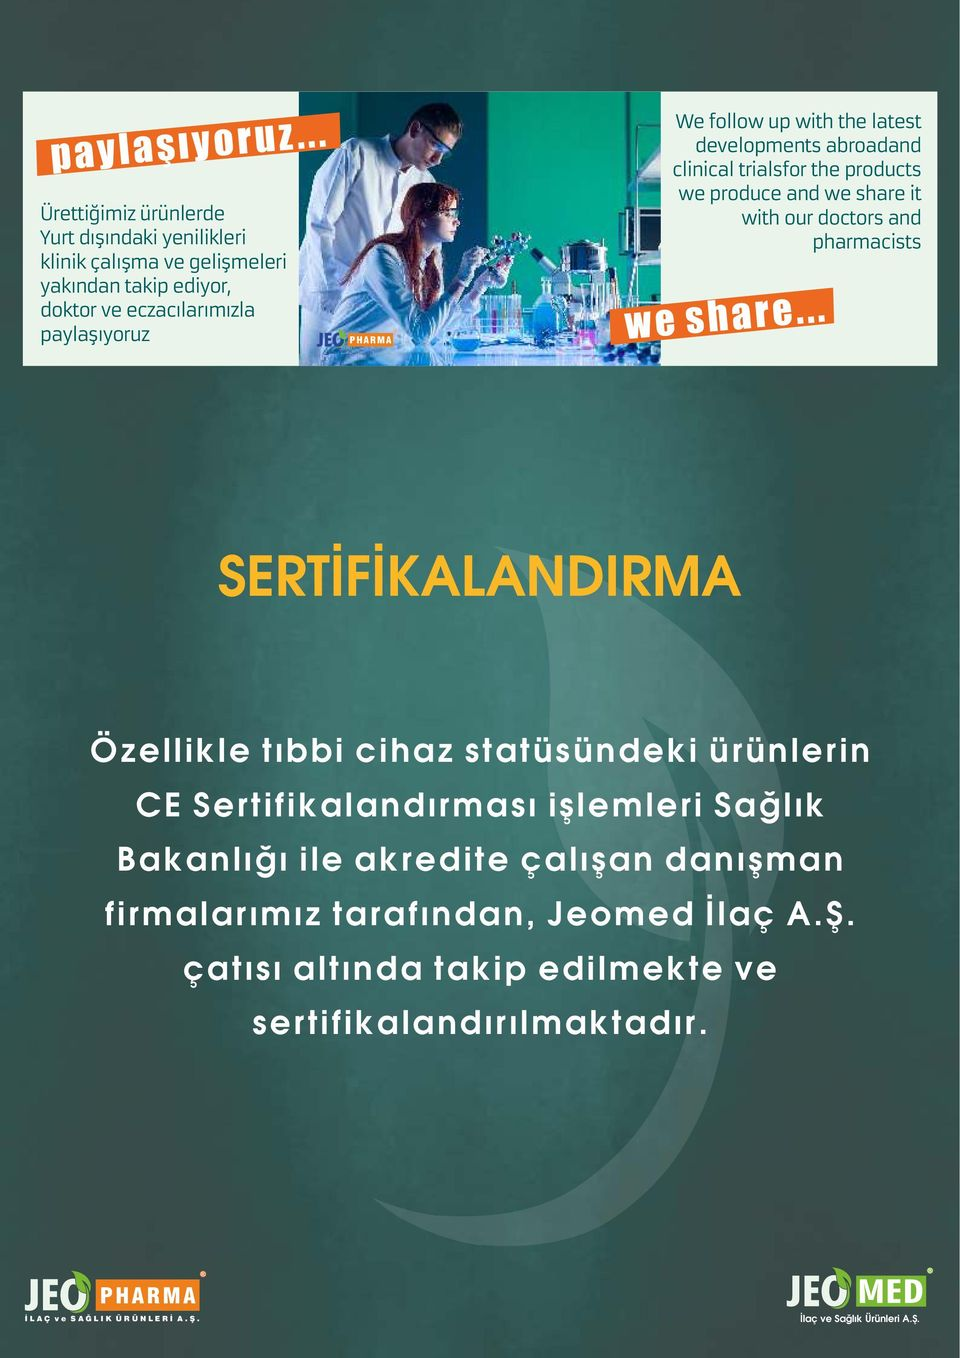 eczacılarımızla paylaşıyoruz developments abroadand clinical trialsfor the products we produce and we share it with our doctors and pharmacists